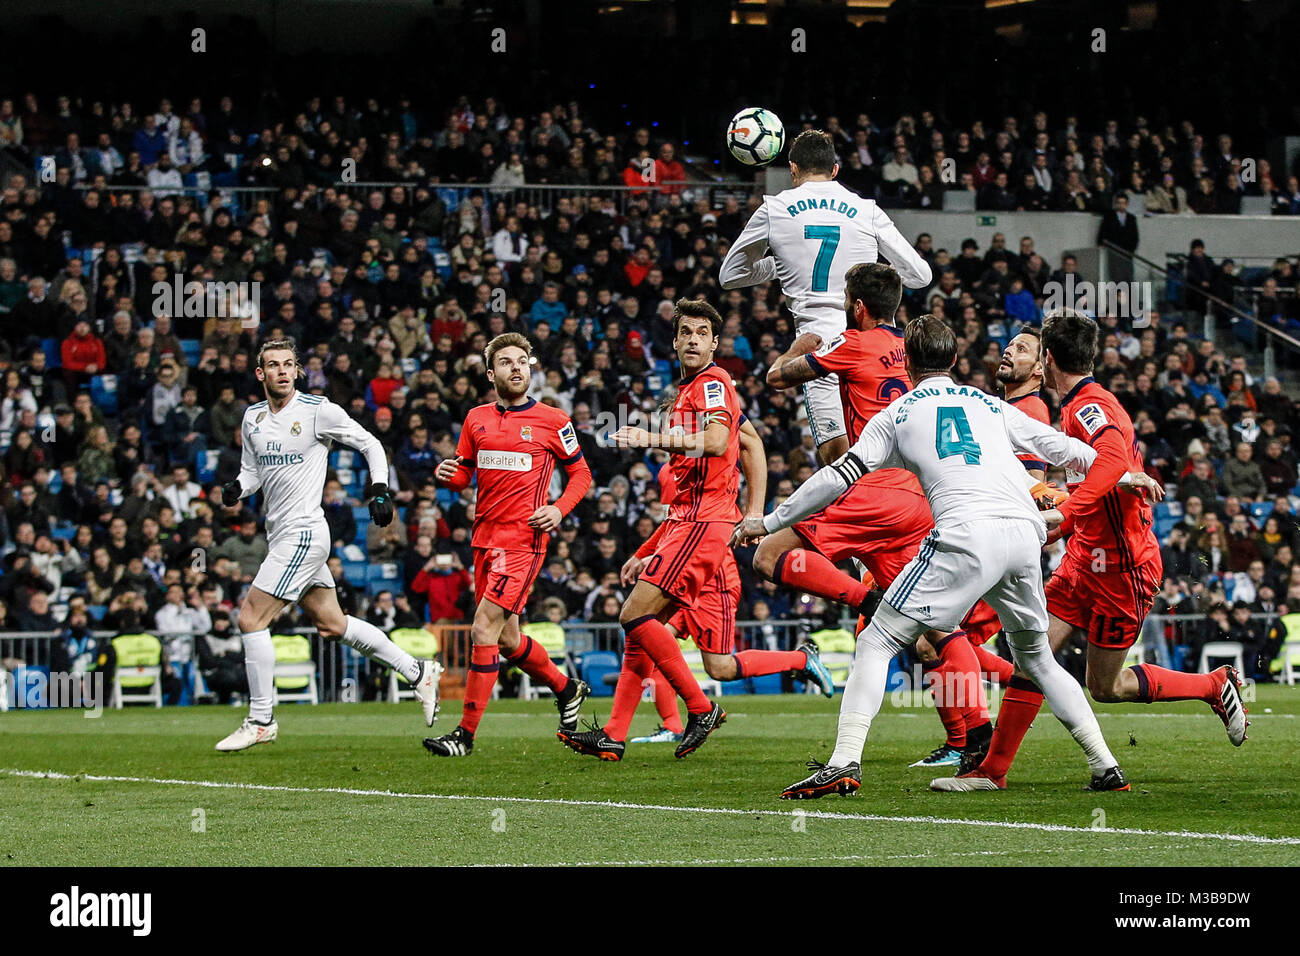 Cristiano Ronaldo (Real Madrid) fights for the header with La Liga match between Real Madrid vs Real Sociedad at - Stock Image